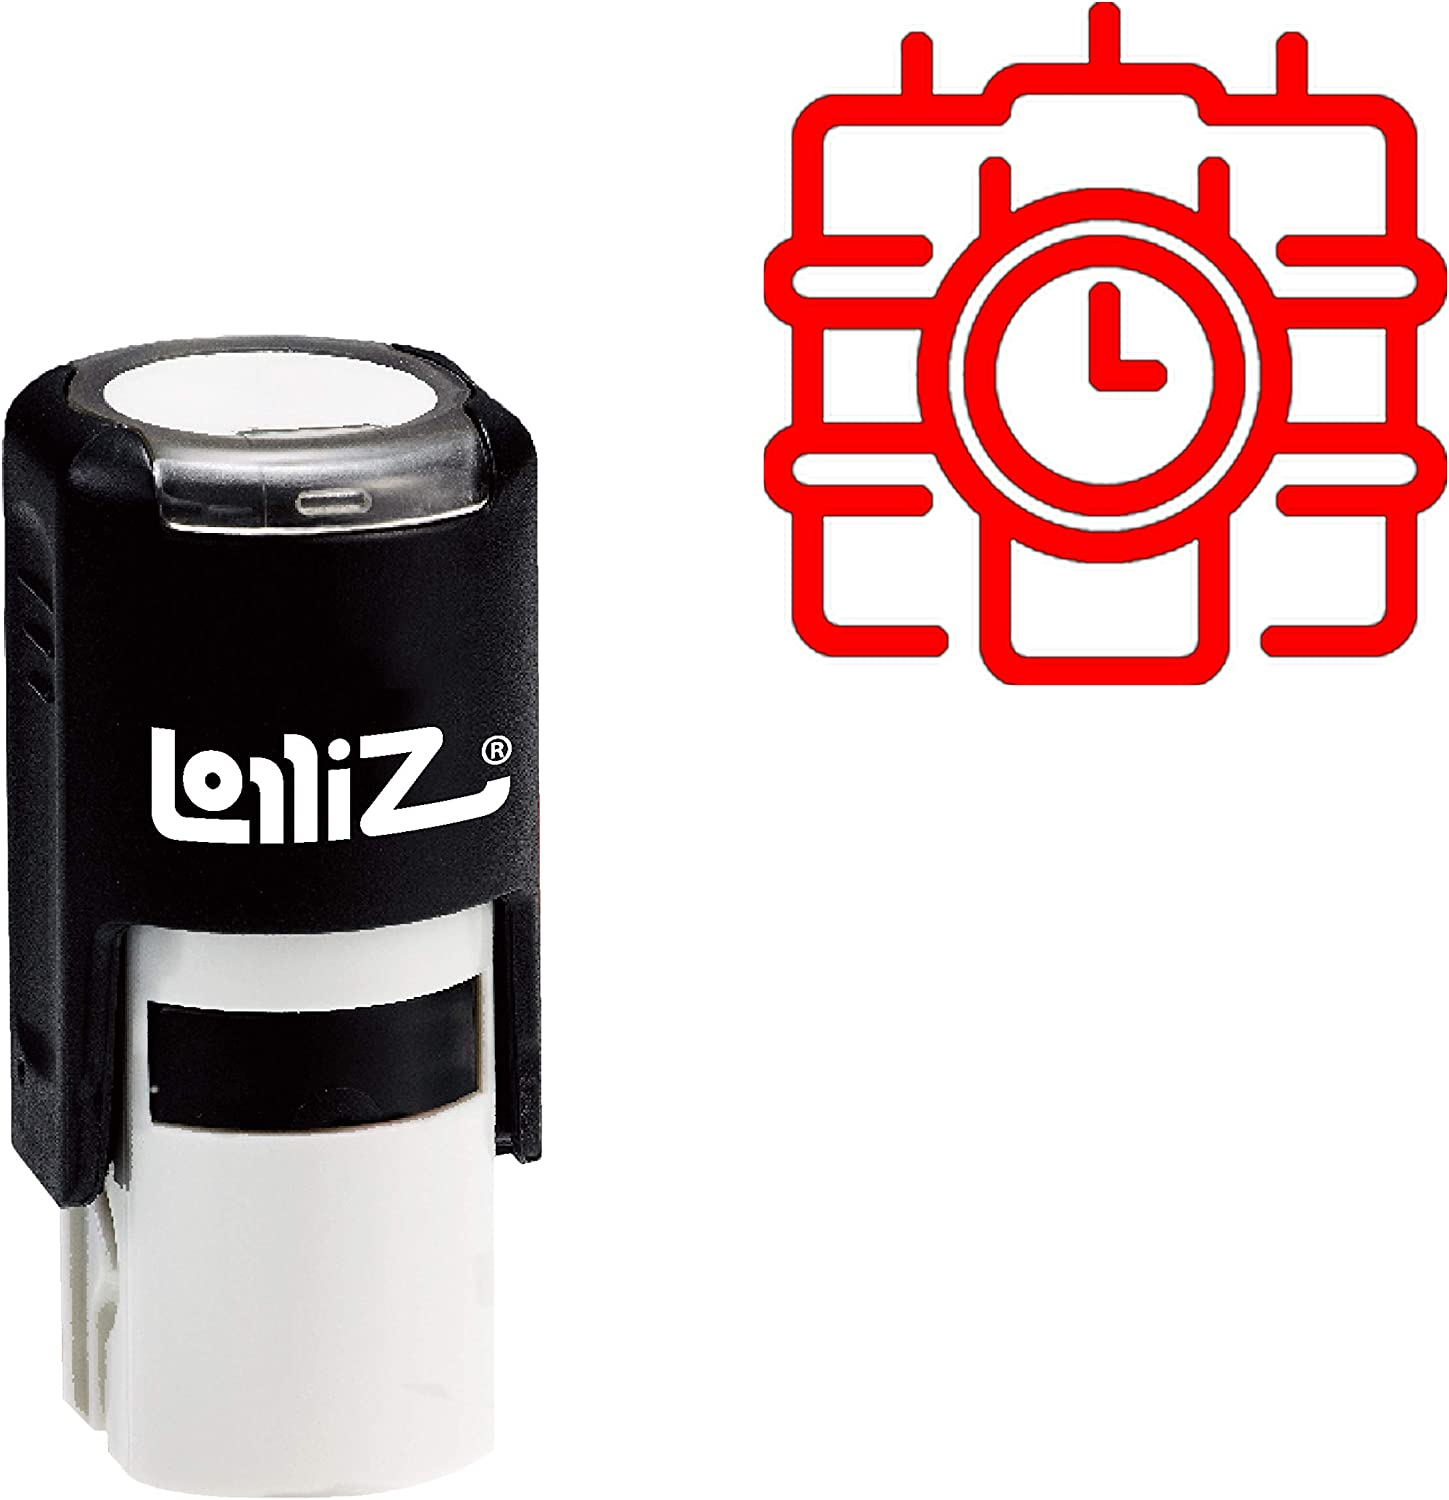 LolliZ Modern Symbol Series - Time Bomb Self-Inking Rubber Stamp: Amazon.es: Juguetes y juegos